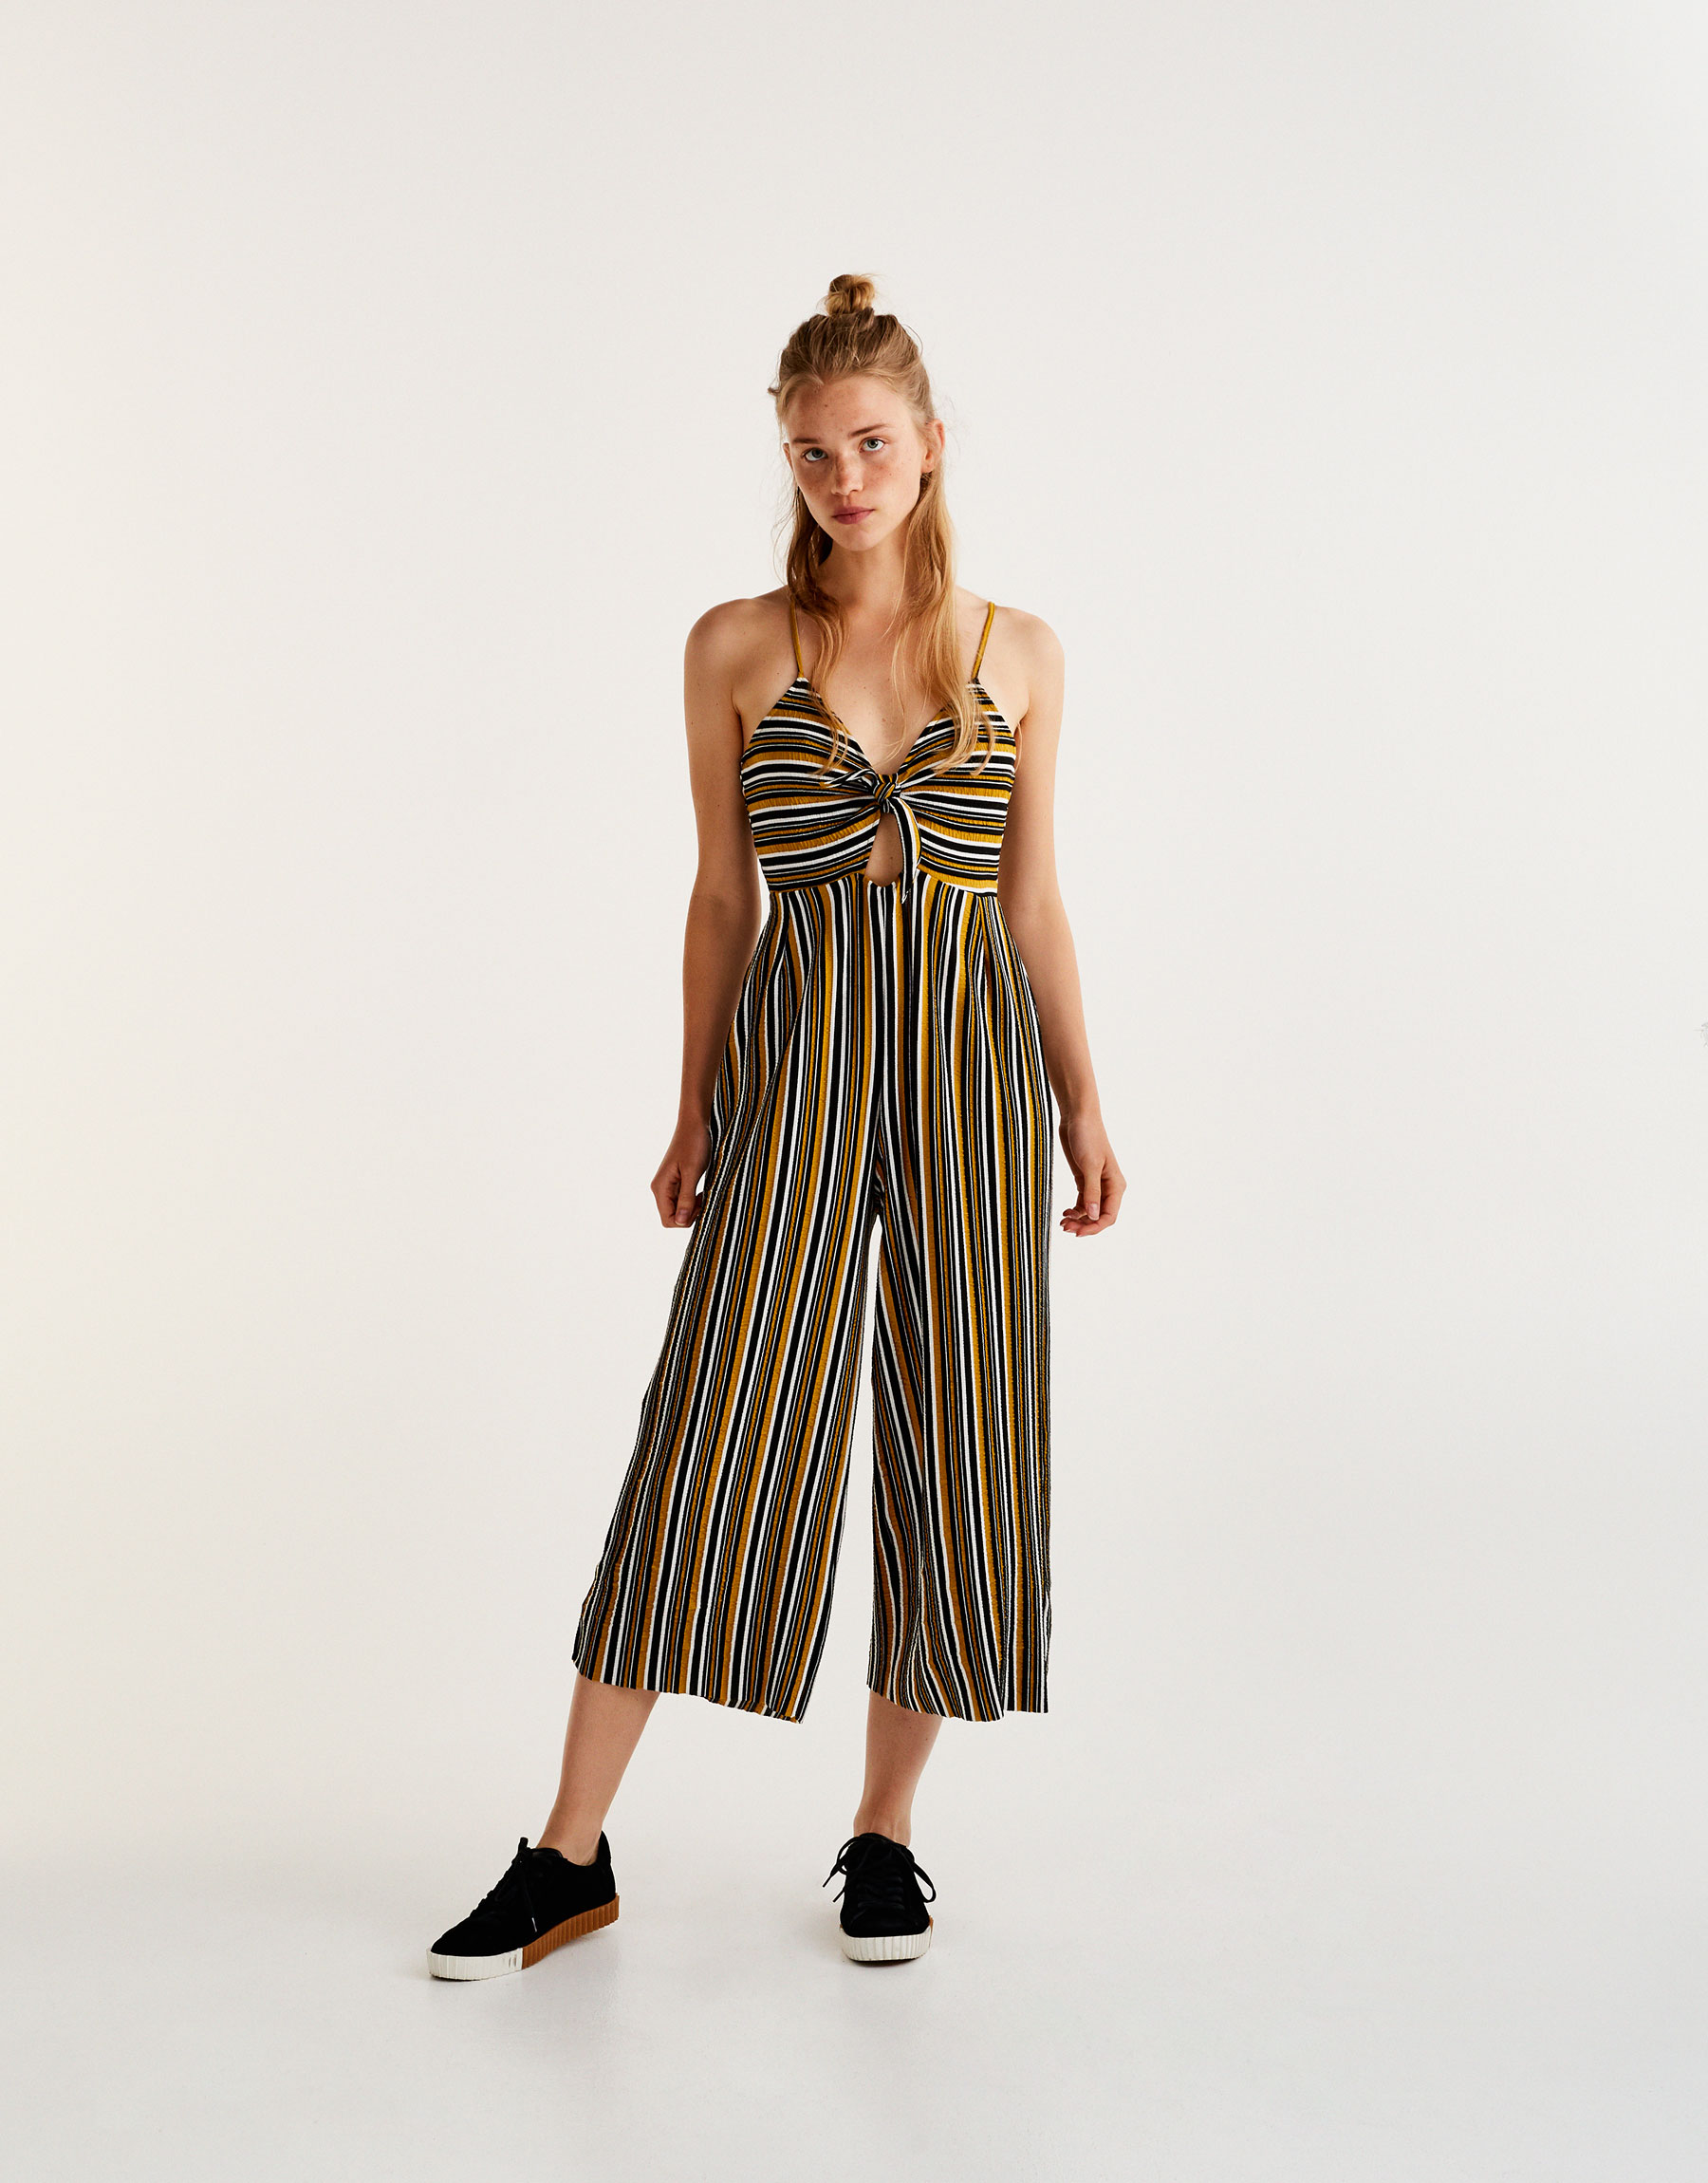 Striped culotte jumpsuit in mustard yellow